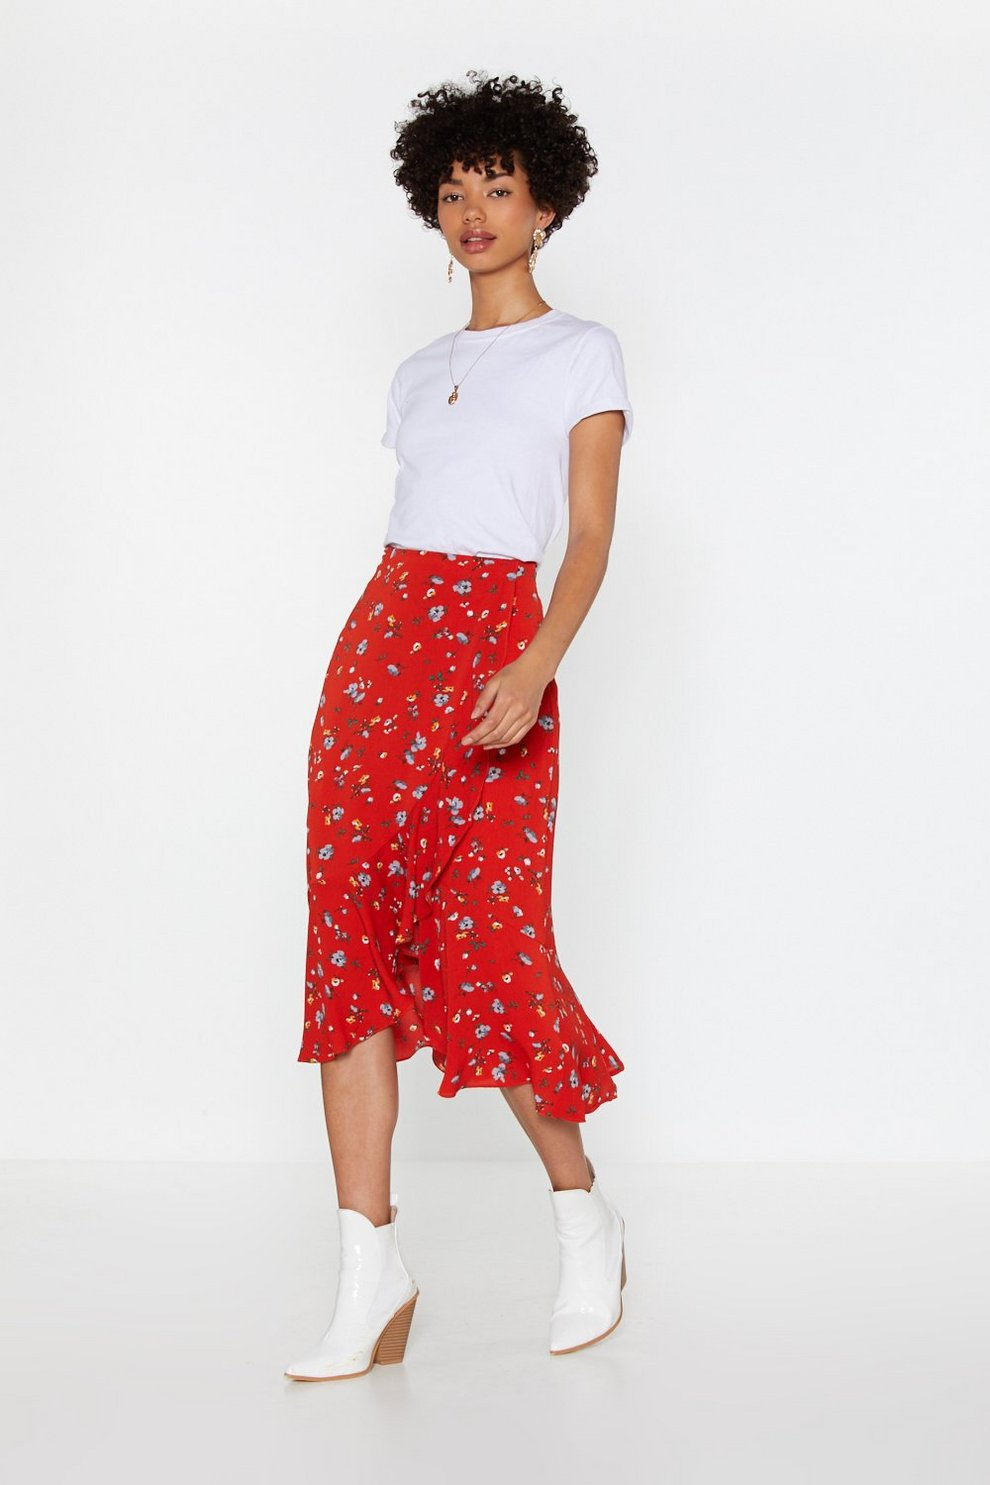 186da0c5e9a Promotions. 50% Off Everything.  25.00  50.00. Floral Ruffle Wrap Midi Skirt